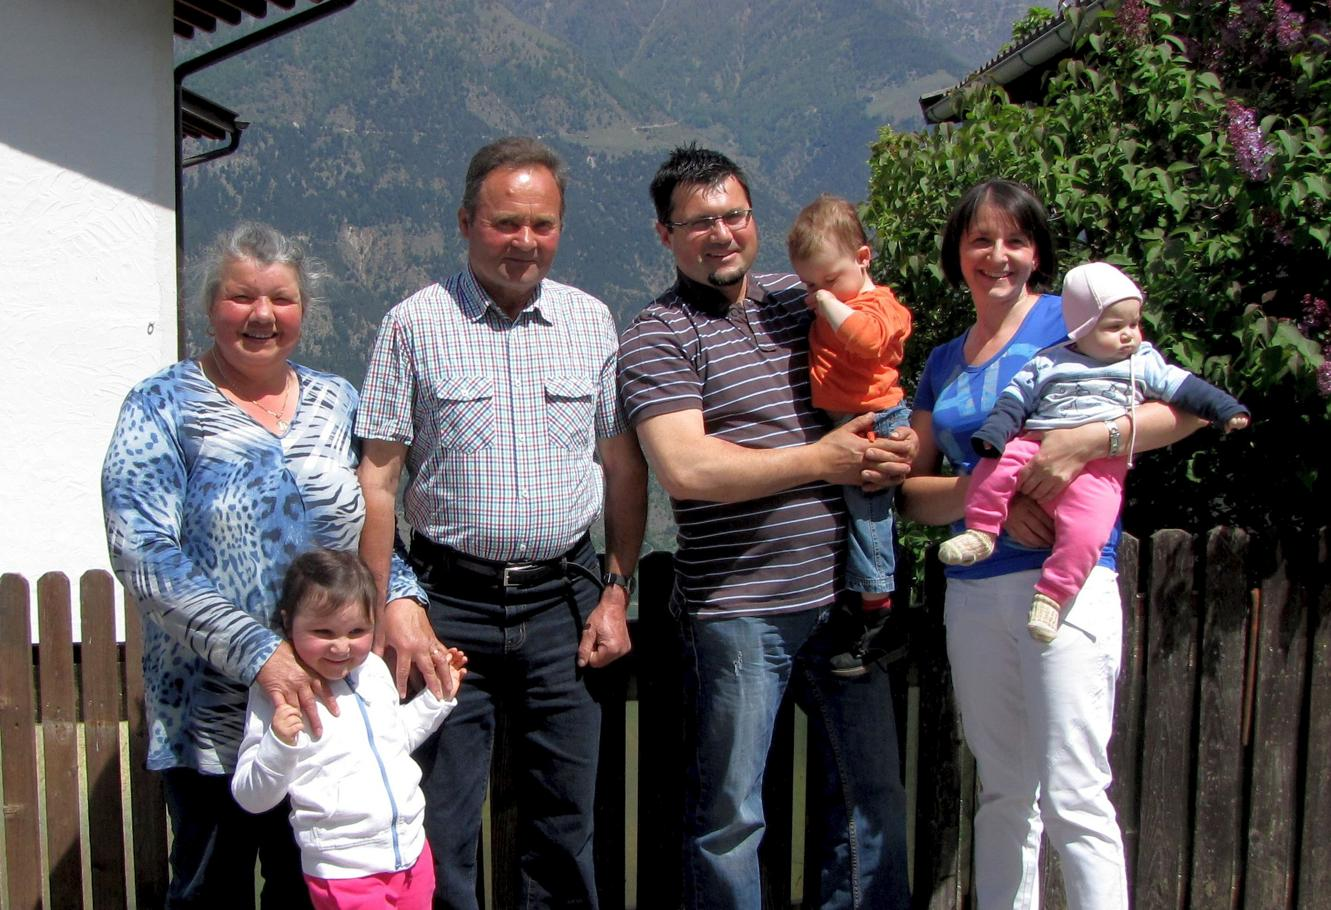 Family foto in front of the farm house (from left to right: Maria, Elina, Josef, Roland, Teresa, Irmi und Valerie)